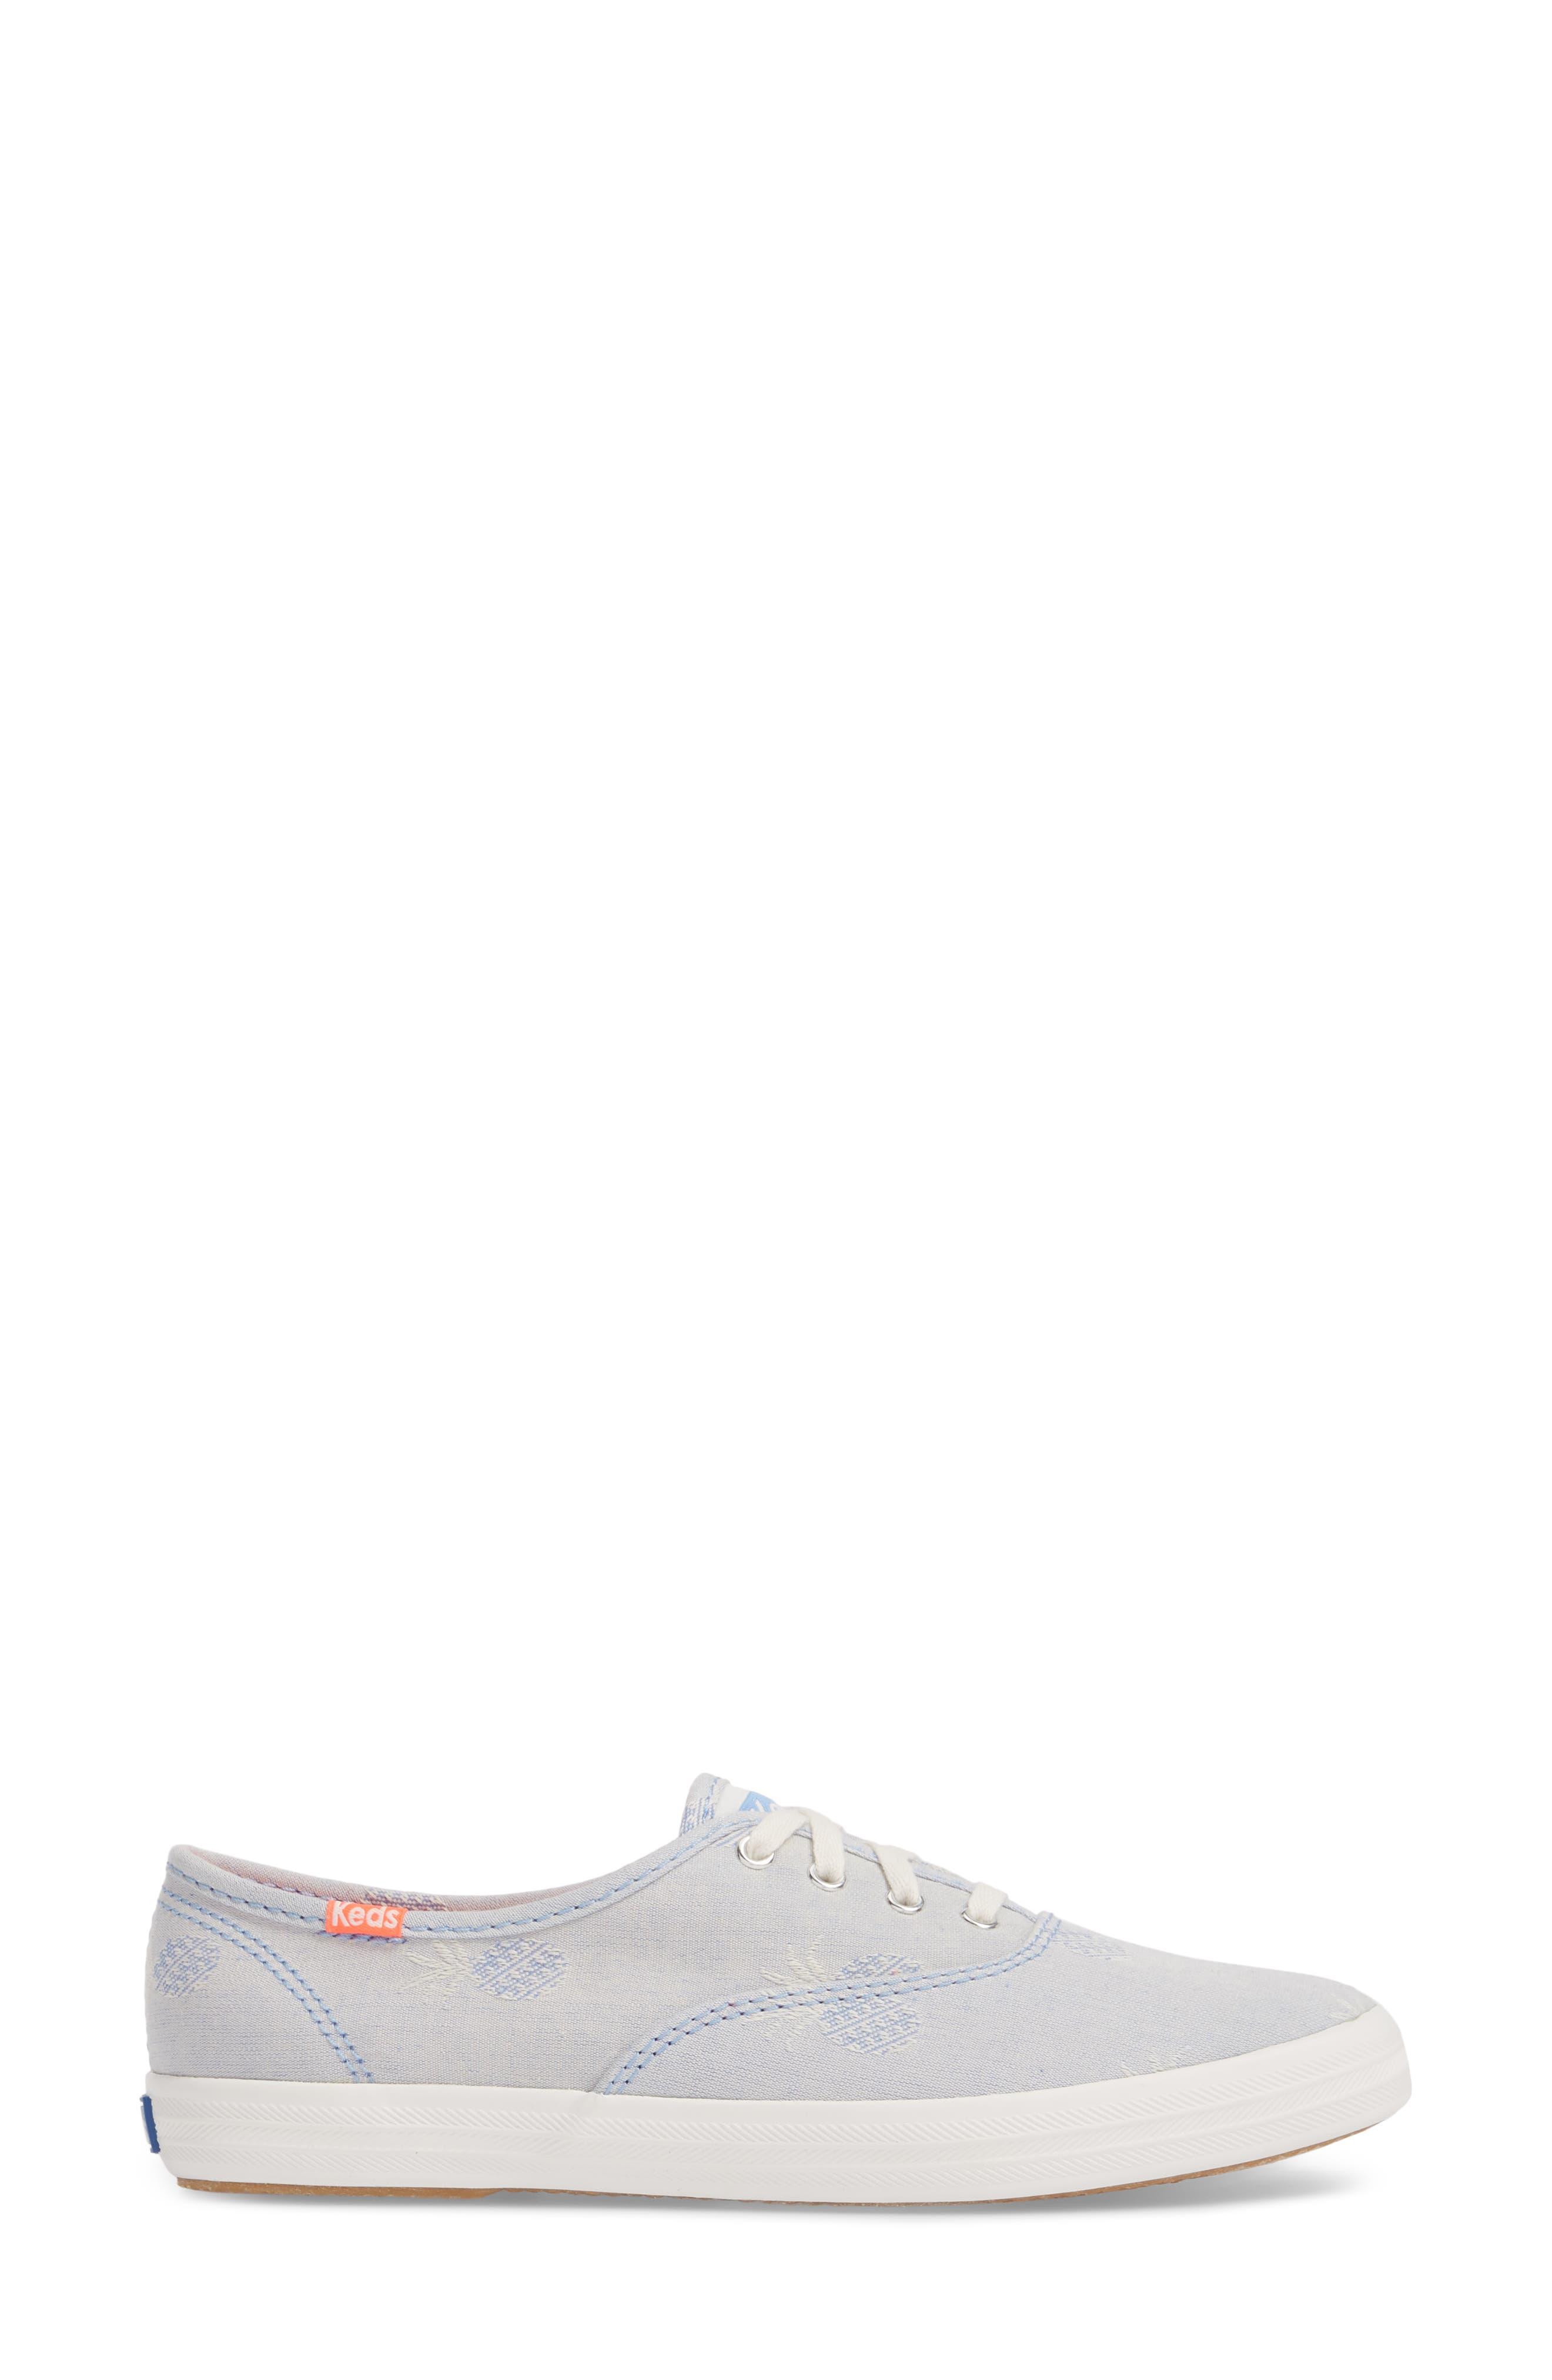 Champion Pineapple Chambray Sneaker,                             Alternate thumbnail 3, color,                             400